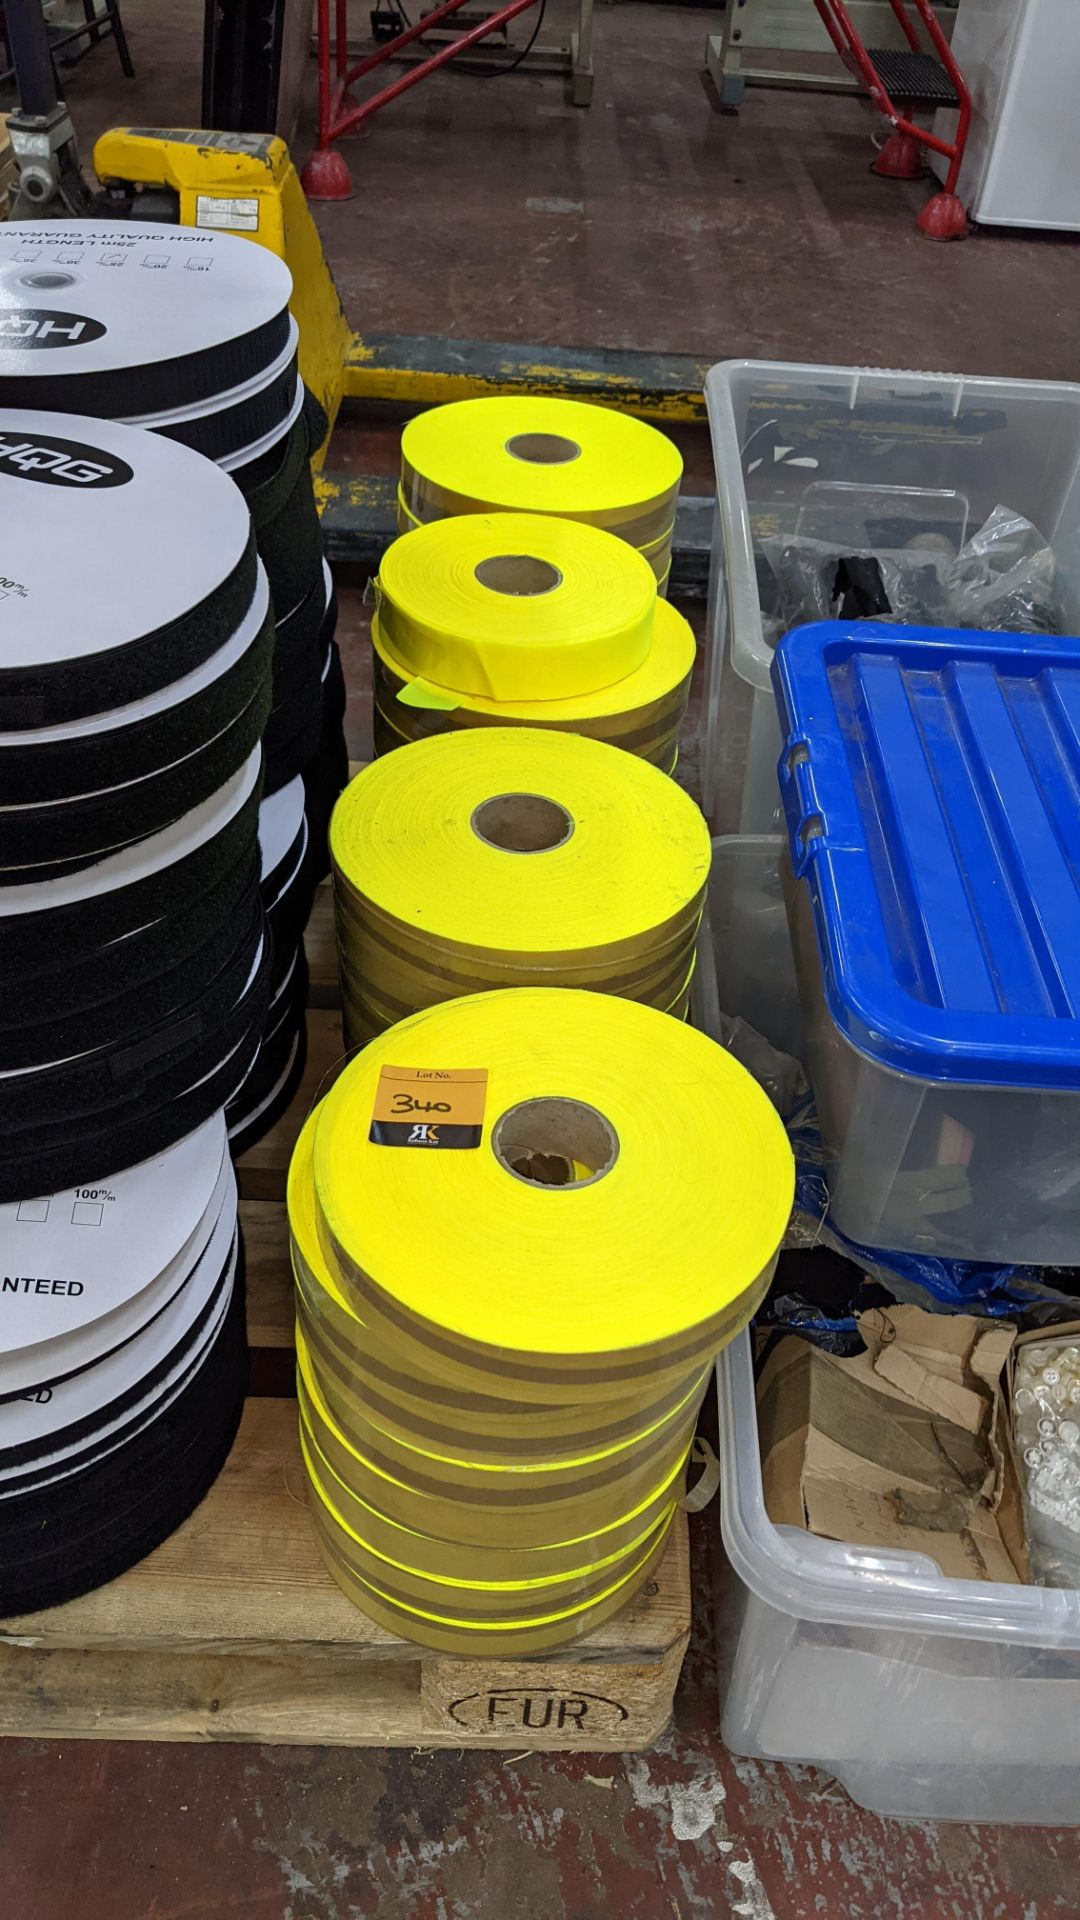 4 stacks of bright yellow tape/reflective material - Image 2 of 3